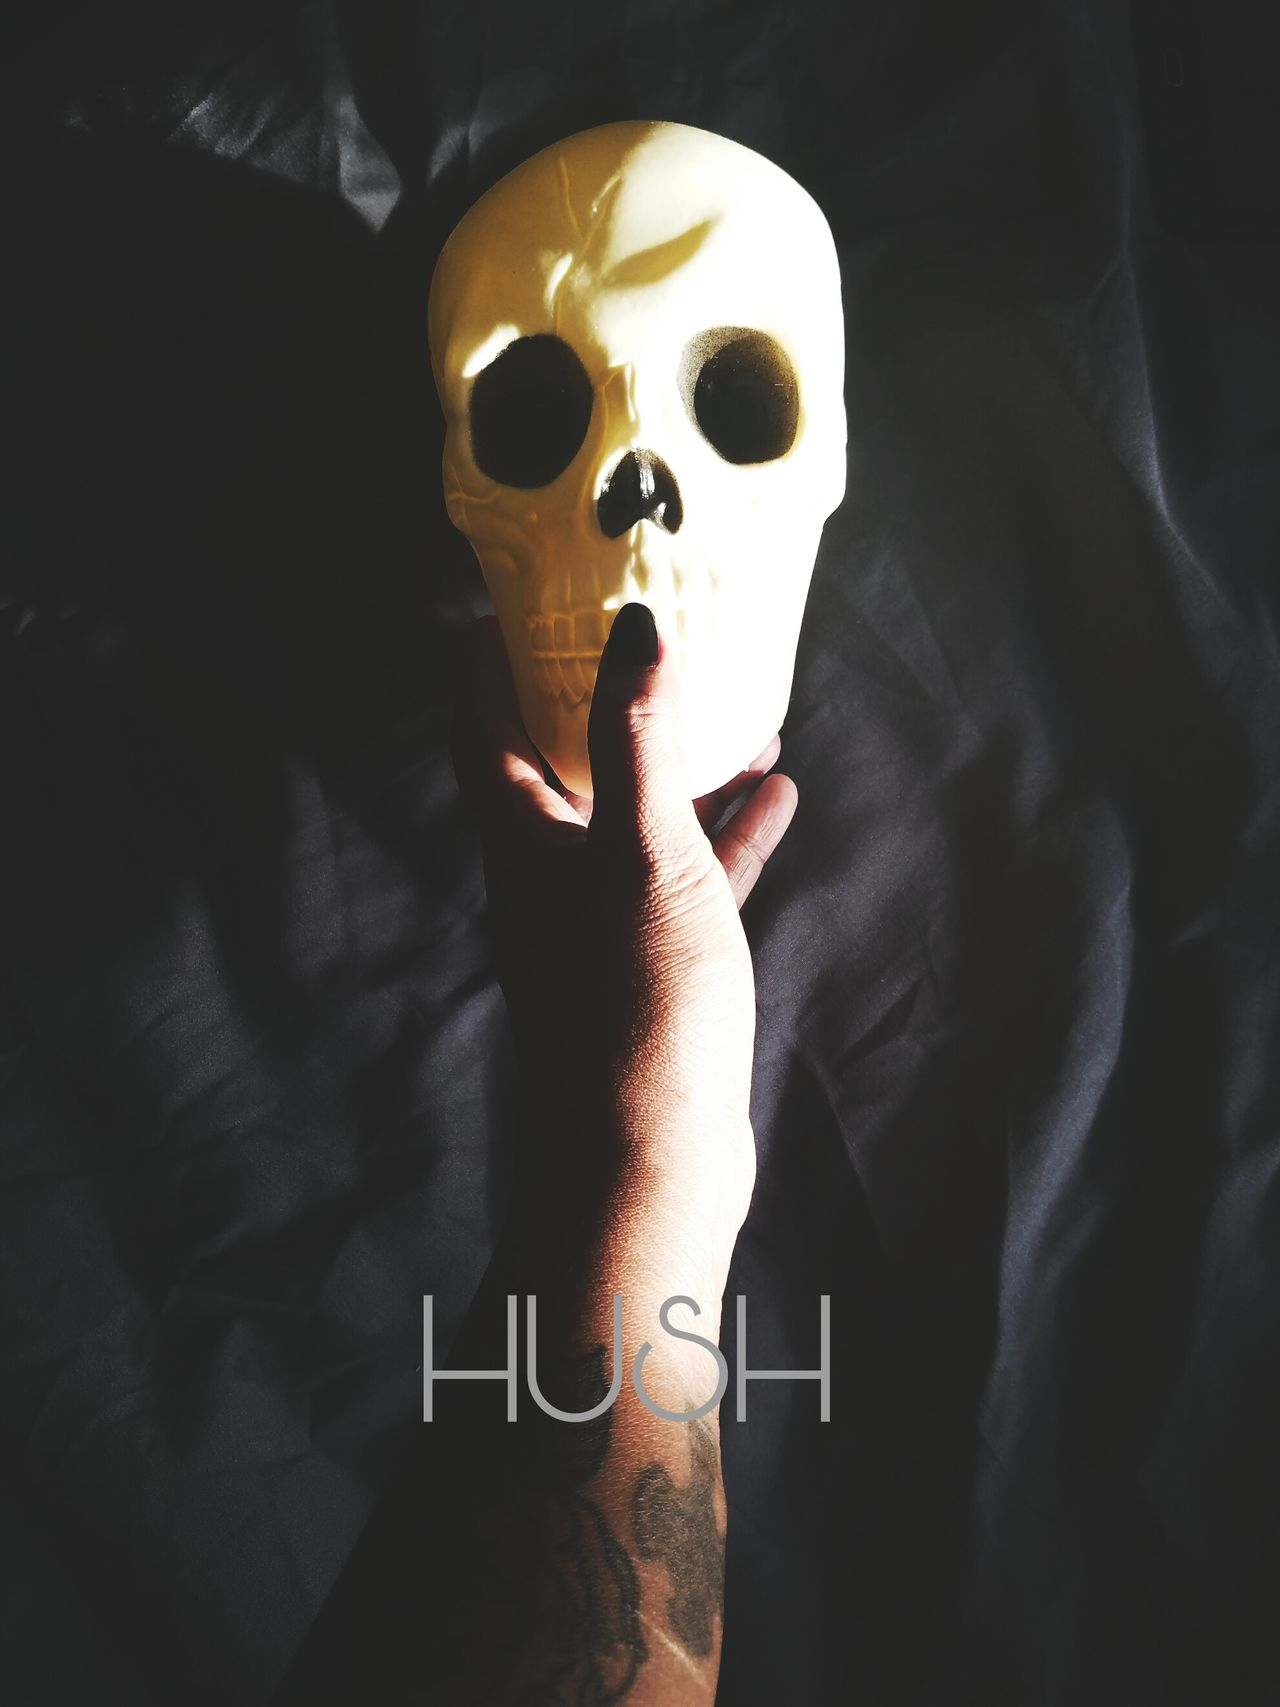 Hush Natural Light Skull Taking Photos Getting Inspired Hands Samsungs7edge Personal Perspective Mobile Photography EyeEm Best Shots